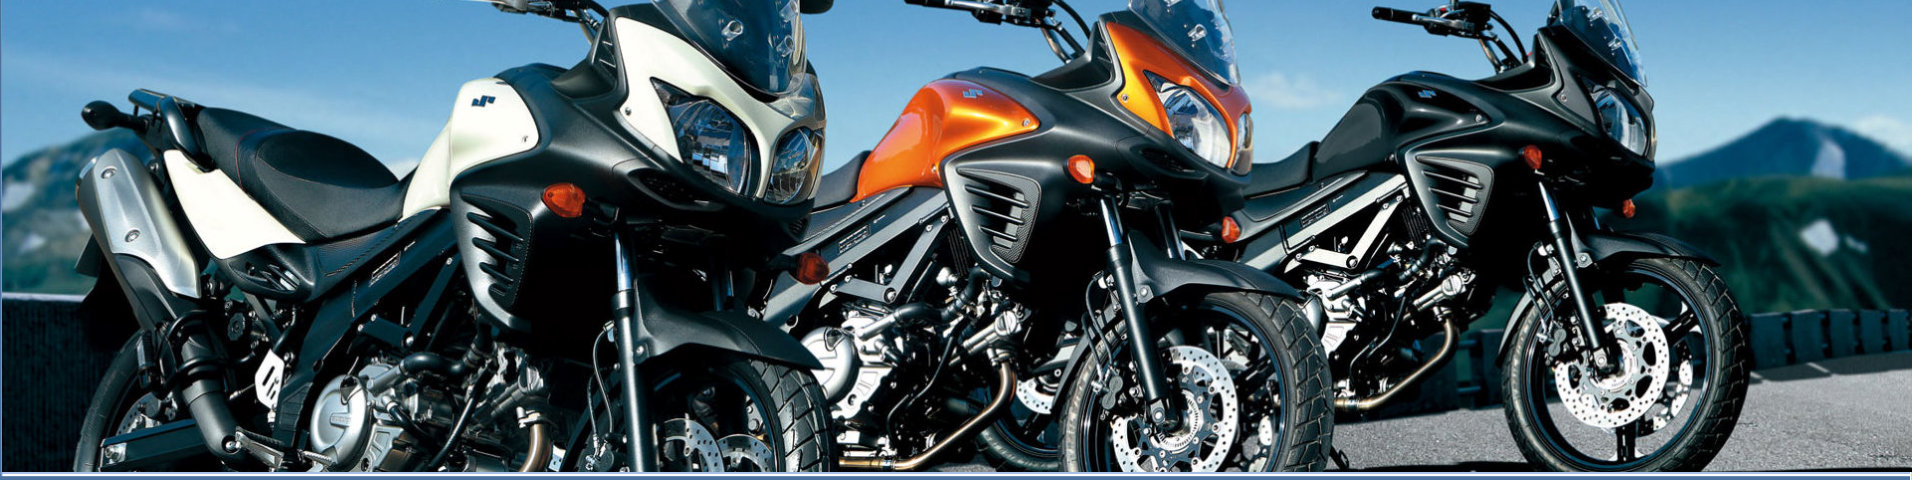 Suzuki V Strom Vstrom Owners Club 2012 Dr650 Wiring Diagram Dl650 Specifications